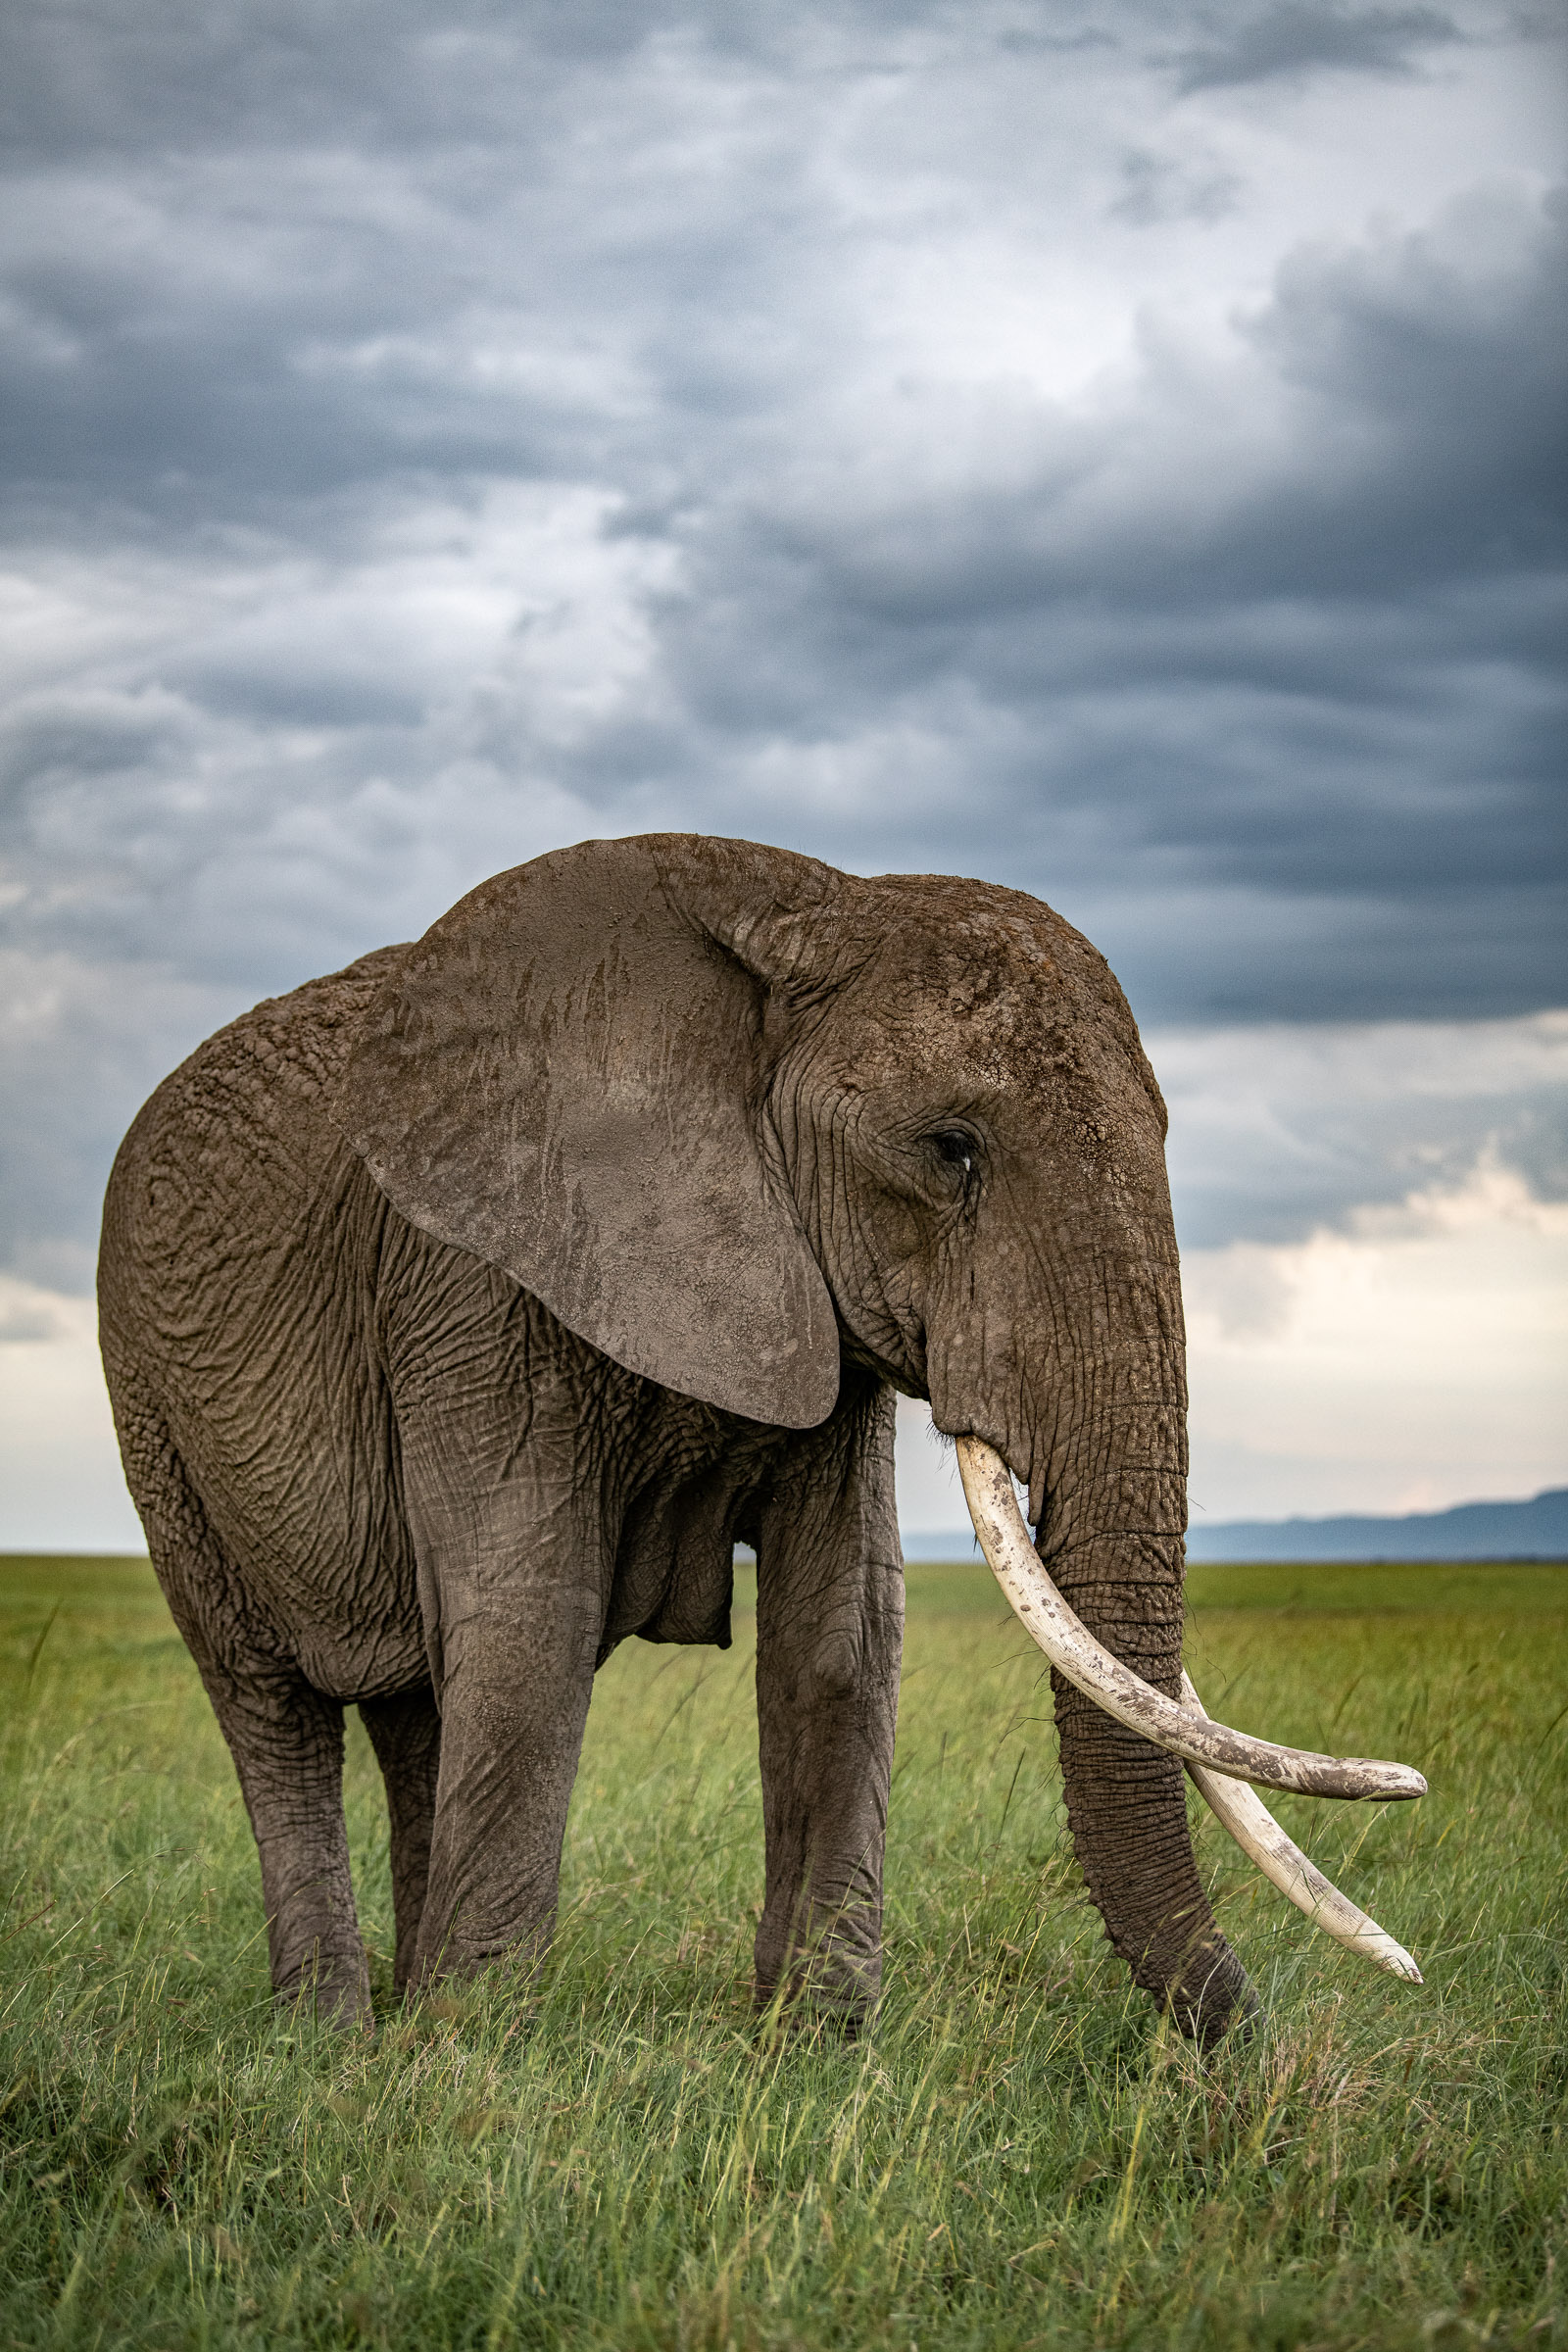 Elephant under stormy skies in the Masai Mara, Kenya, Will Fortescue